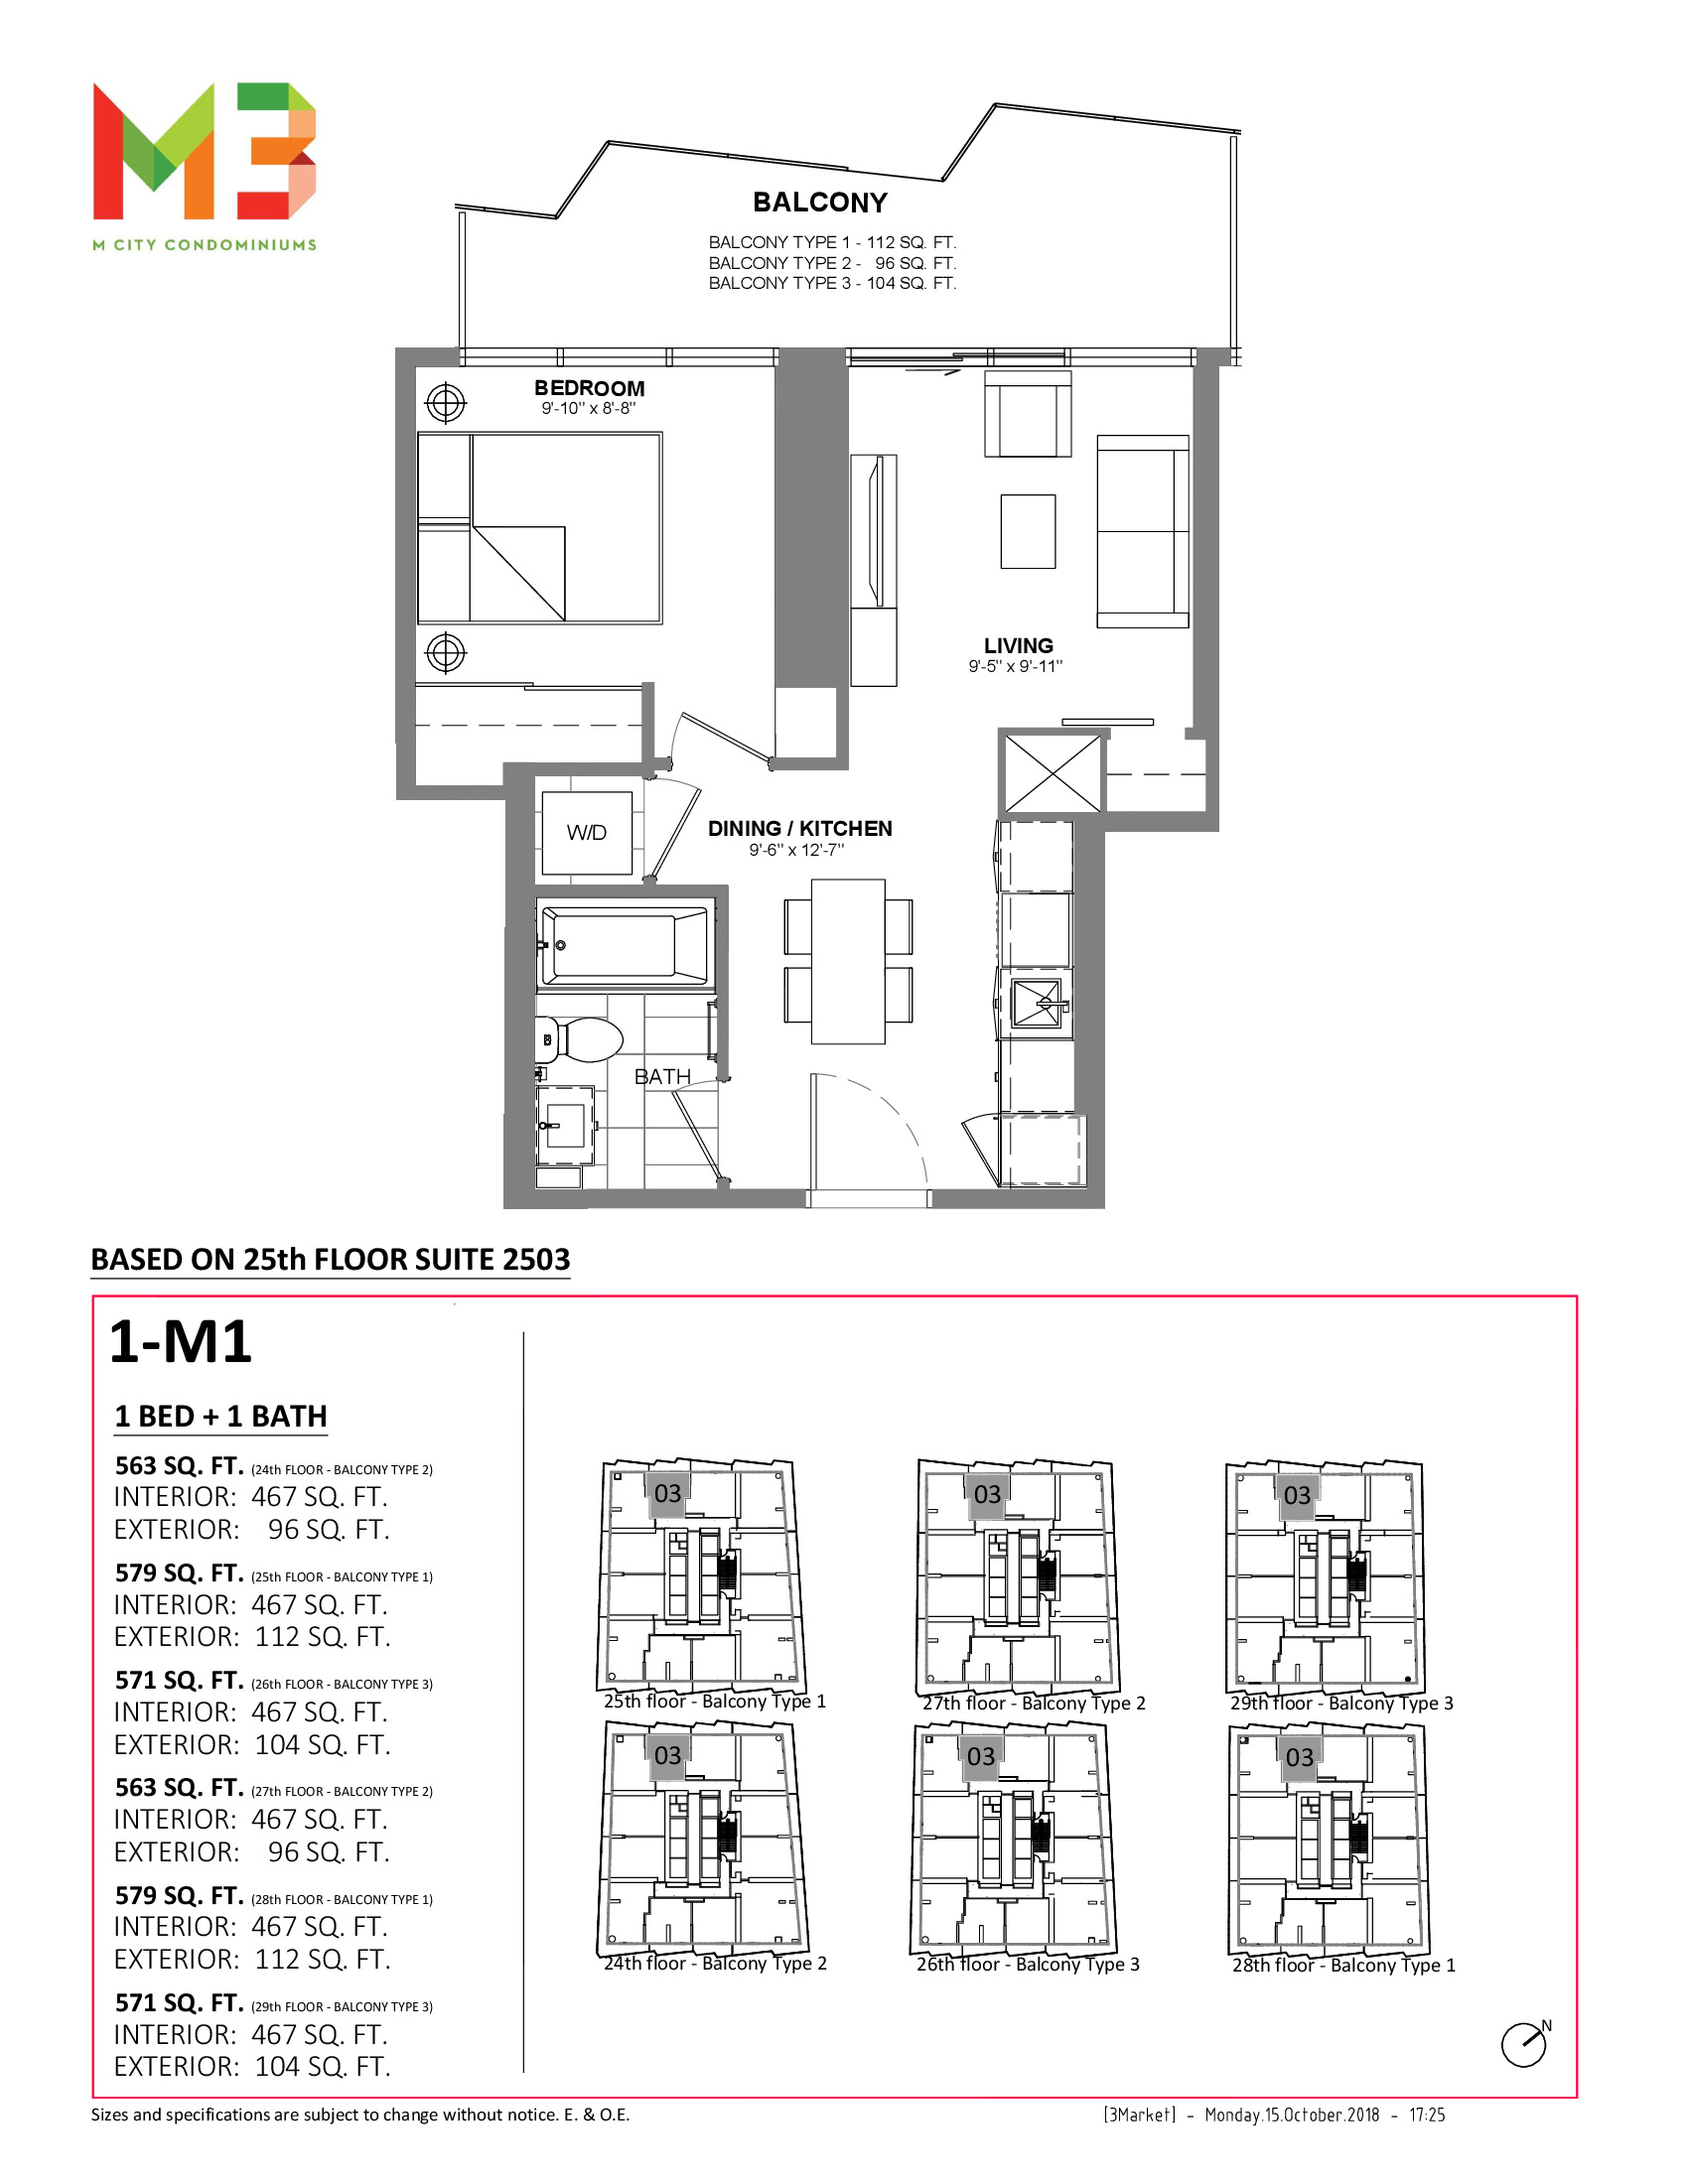 1-M1 Floor Plan at M3 Condos - 467 sq.ft